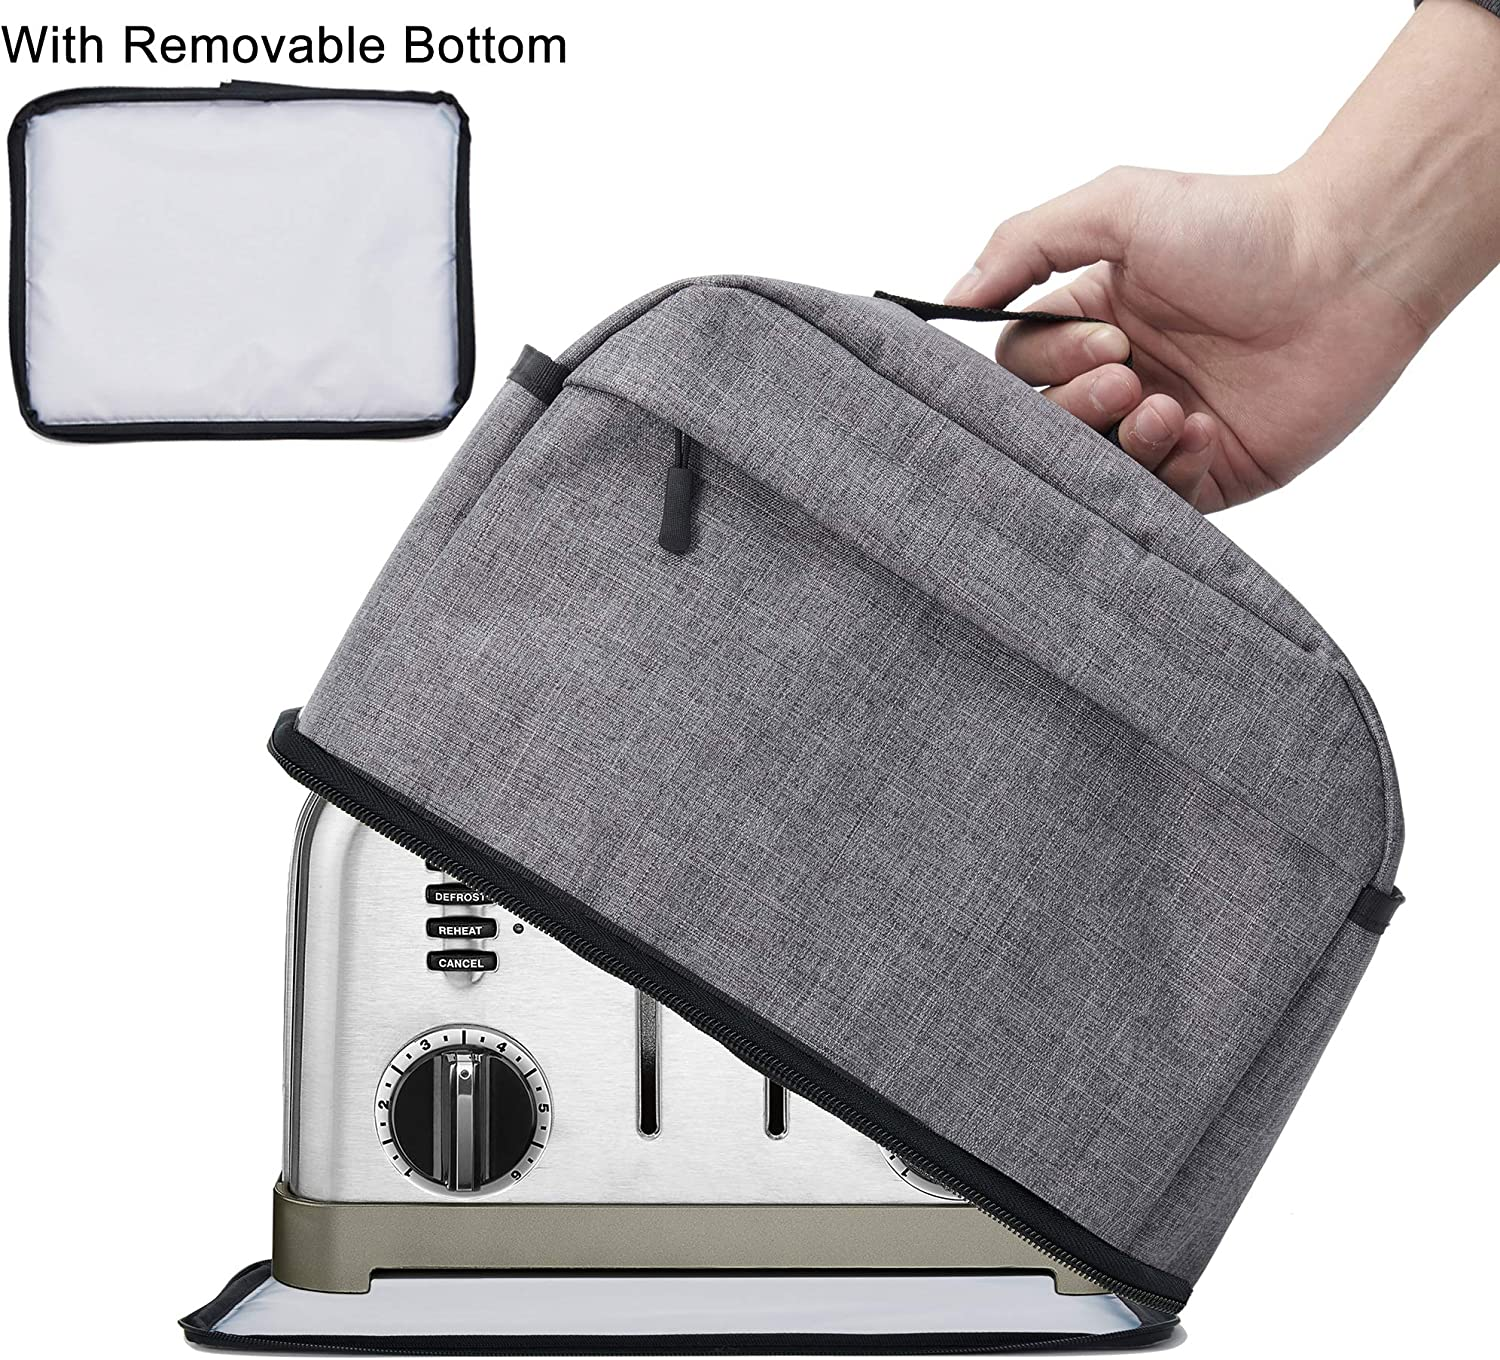 BGD-DG 4 Slice Toaster Cover with Removable Bottom 2-in-1 Toaster Bag with Zipper & Open Pockets Toaster Storage Bag with Handle, Dust and Fingerprint Protection, Machine Washable, Gray